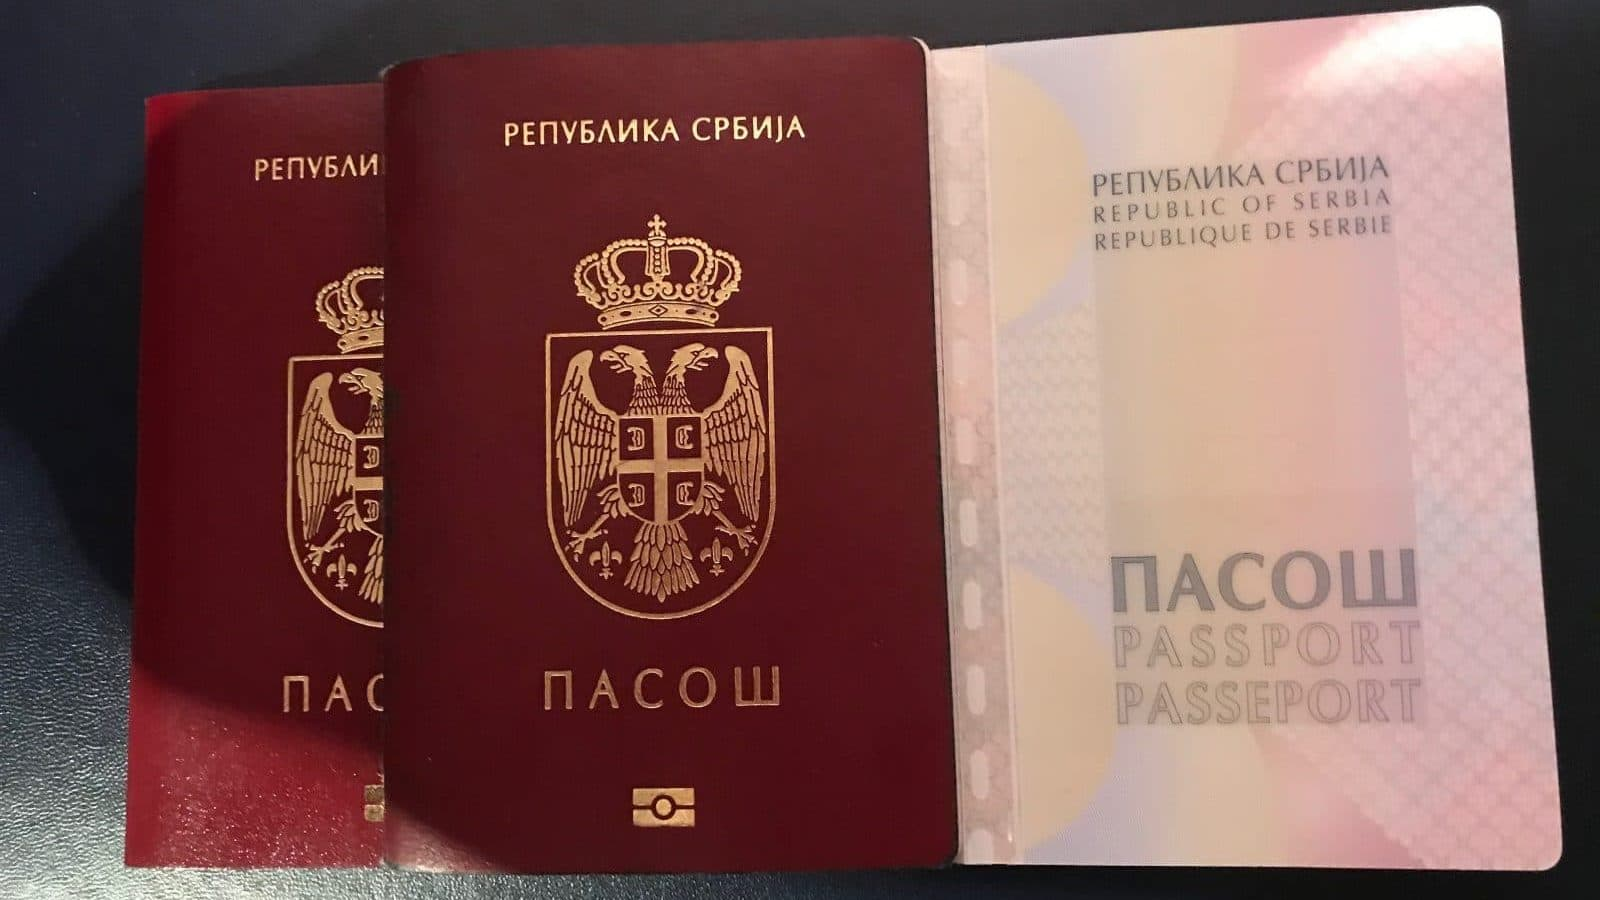 Kosovo Serbs' Freedom of Movement Curtailed by Serbia   Balkan Insight